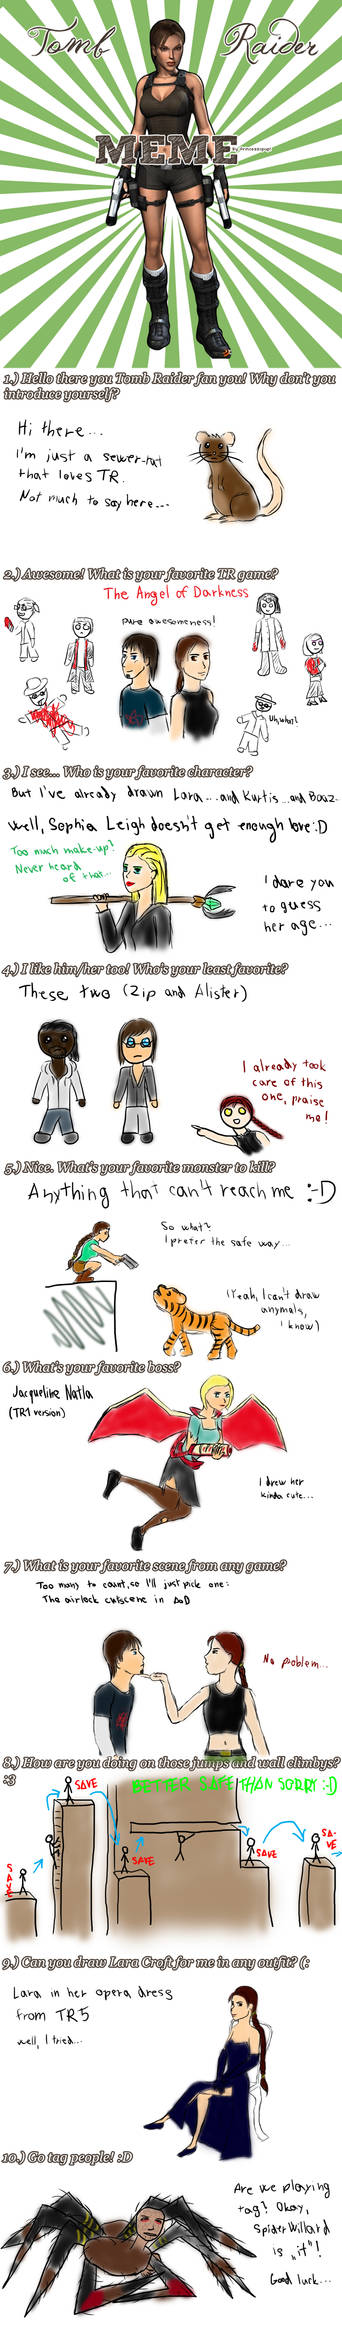 Tomb Raider Meme 2 By Potkanka On Deviantart